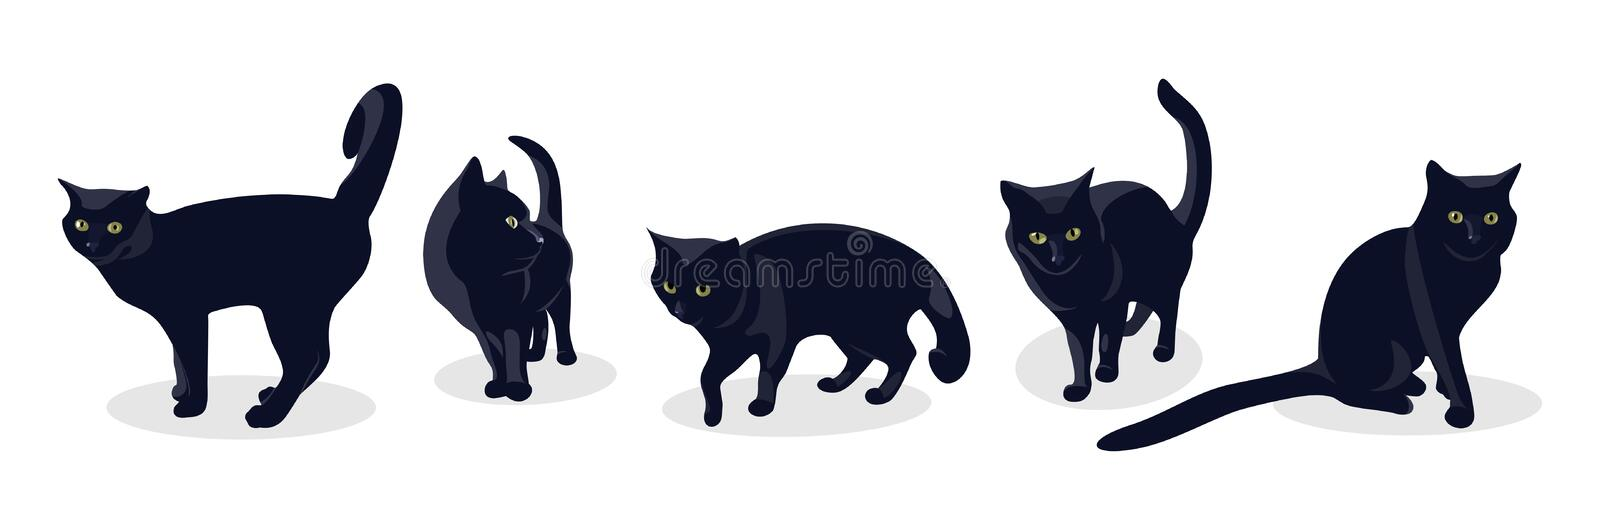 Black cat in different poses, isolated on white background. royalty free illustration